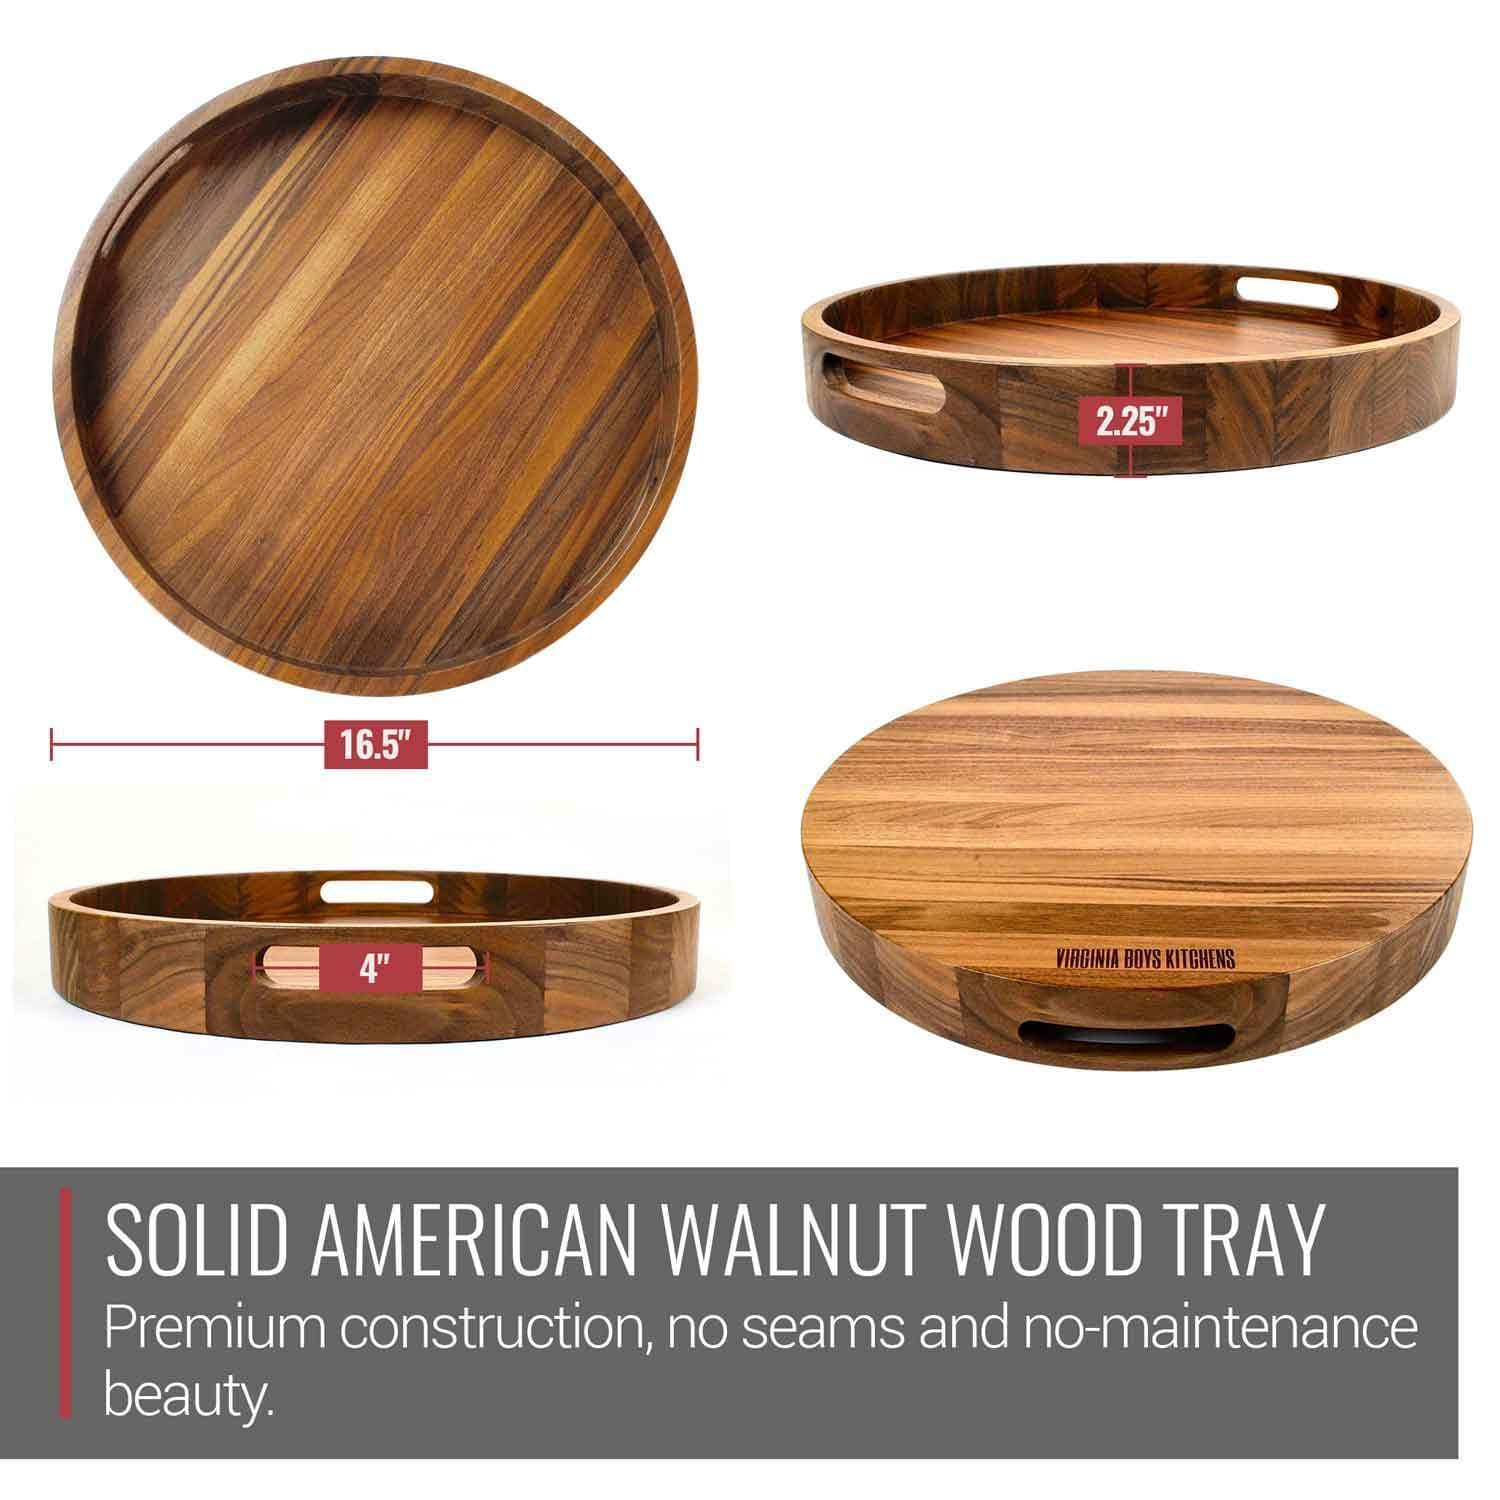 16 5 Inch Round Wooden Serving Tray With Handles Made In Usa Virginia Boys Kitchens